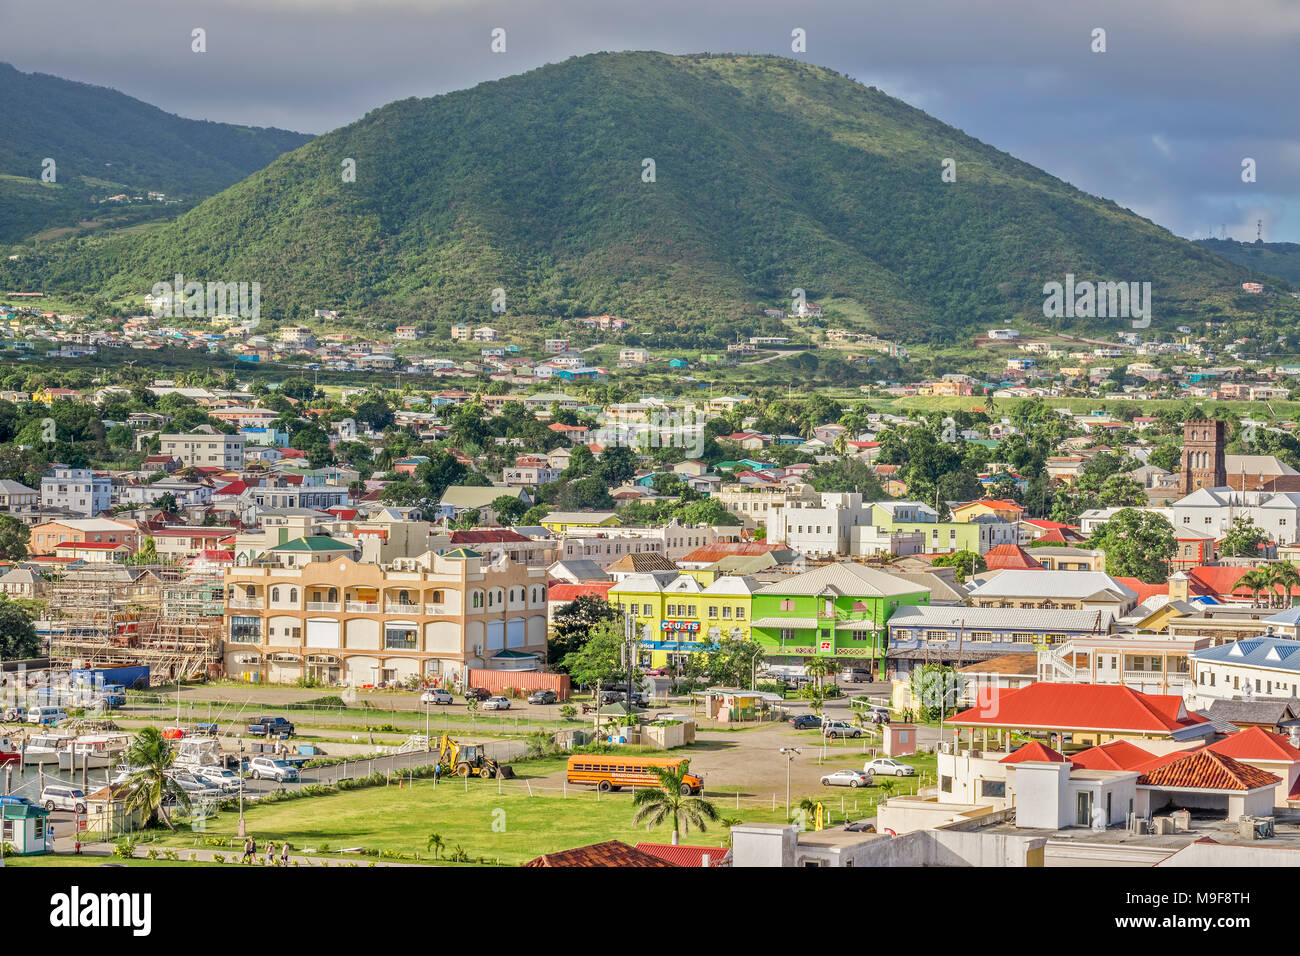 Basseterre,  St. Kitts, West Indies - Stock Image